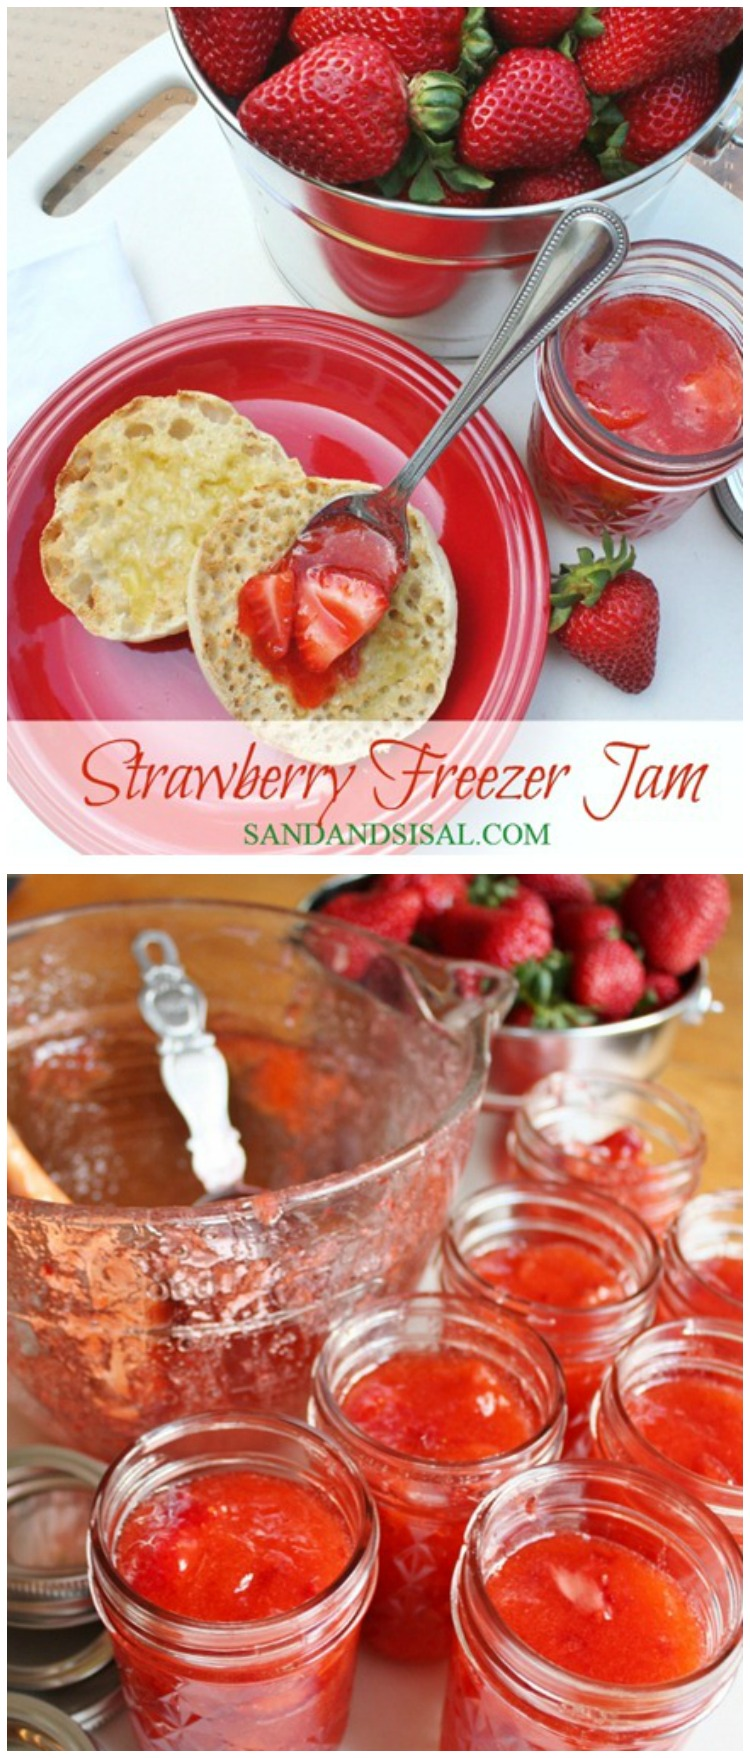 strawberry-freezer-jam-recipe